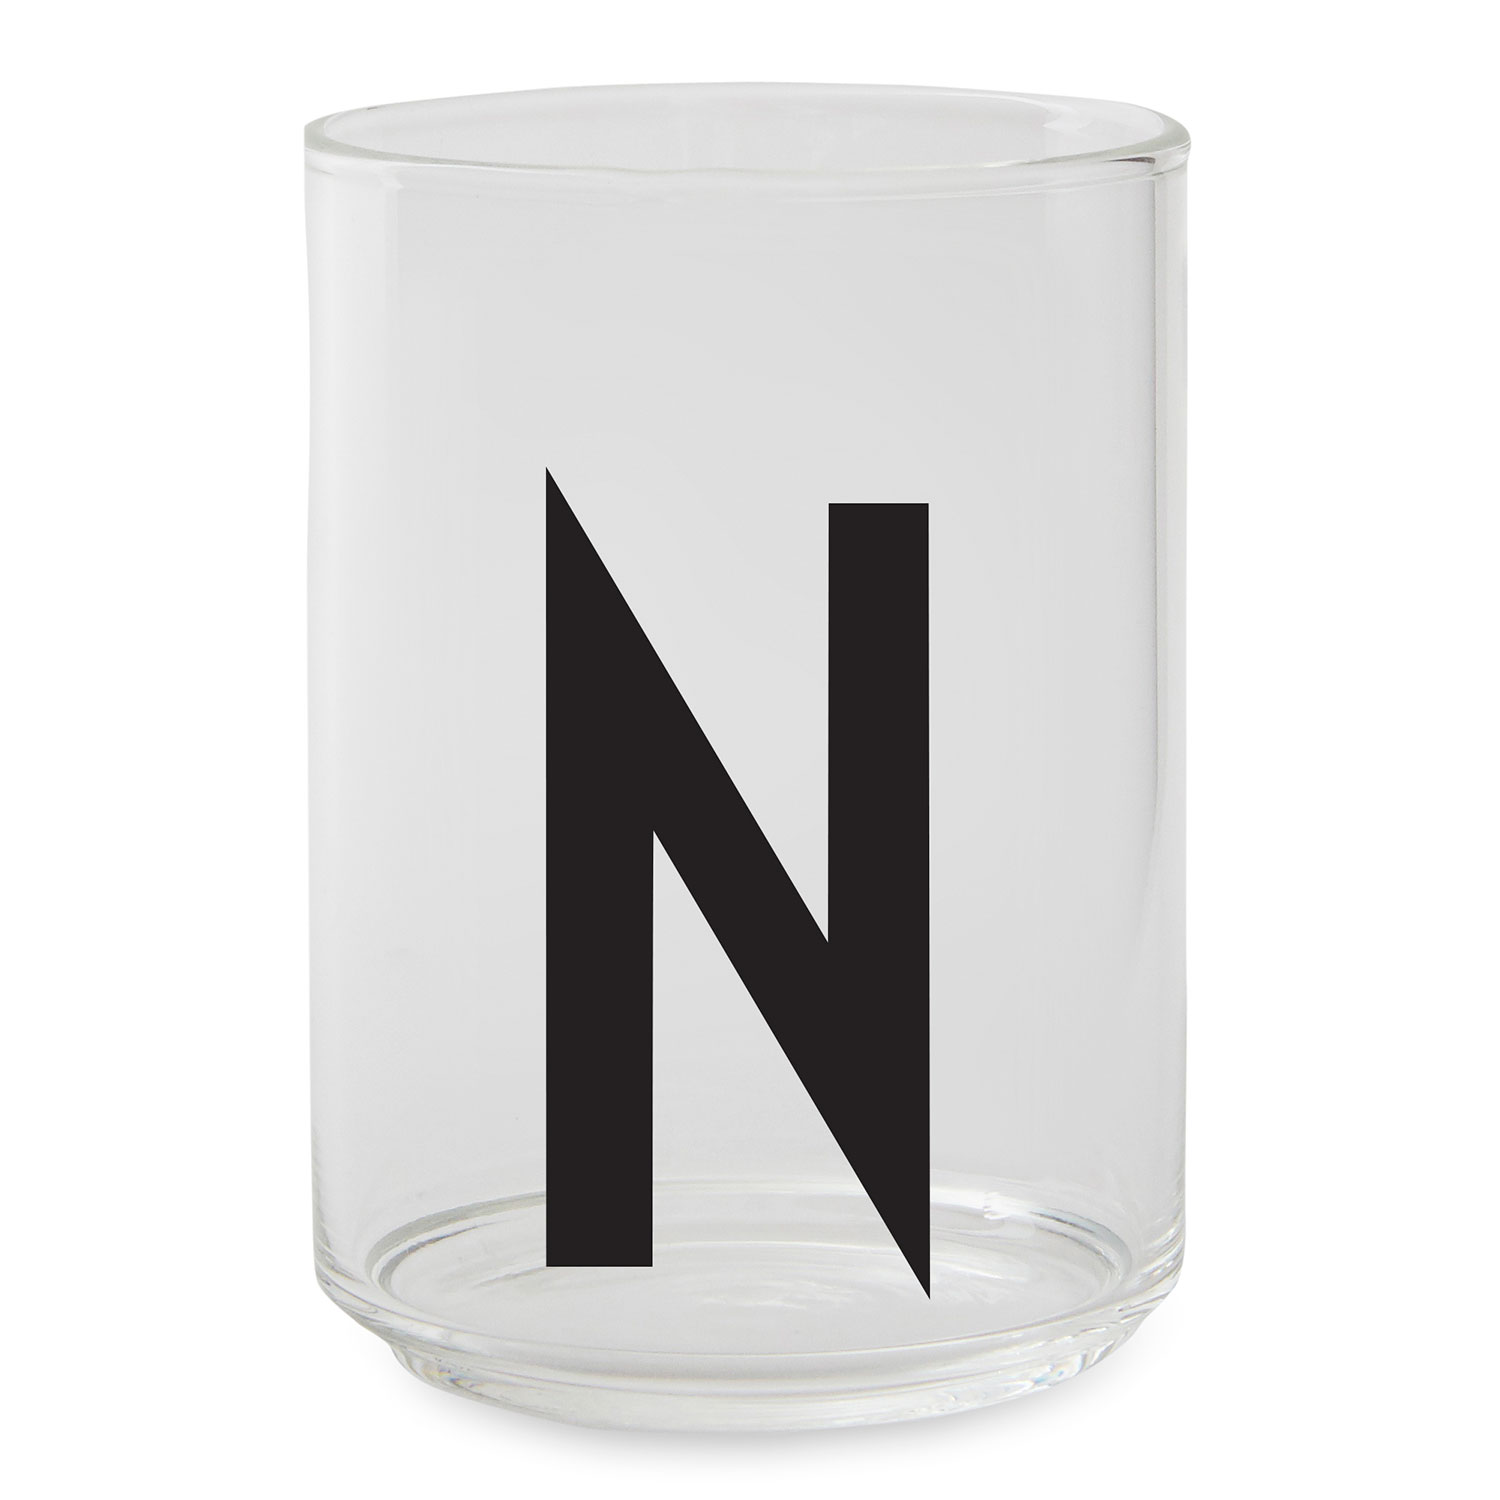 Drinking Glasses Designs Design Letters Drinking Glass N Design Letters